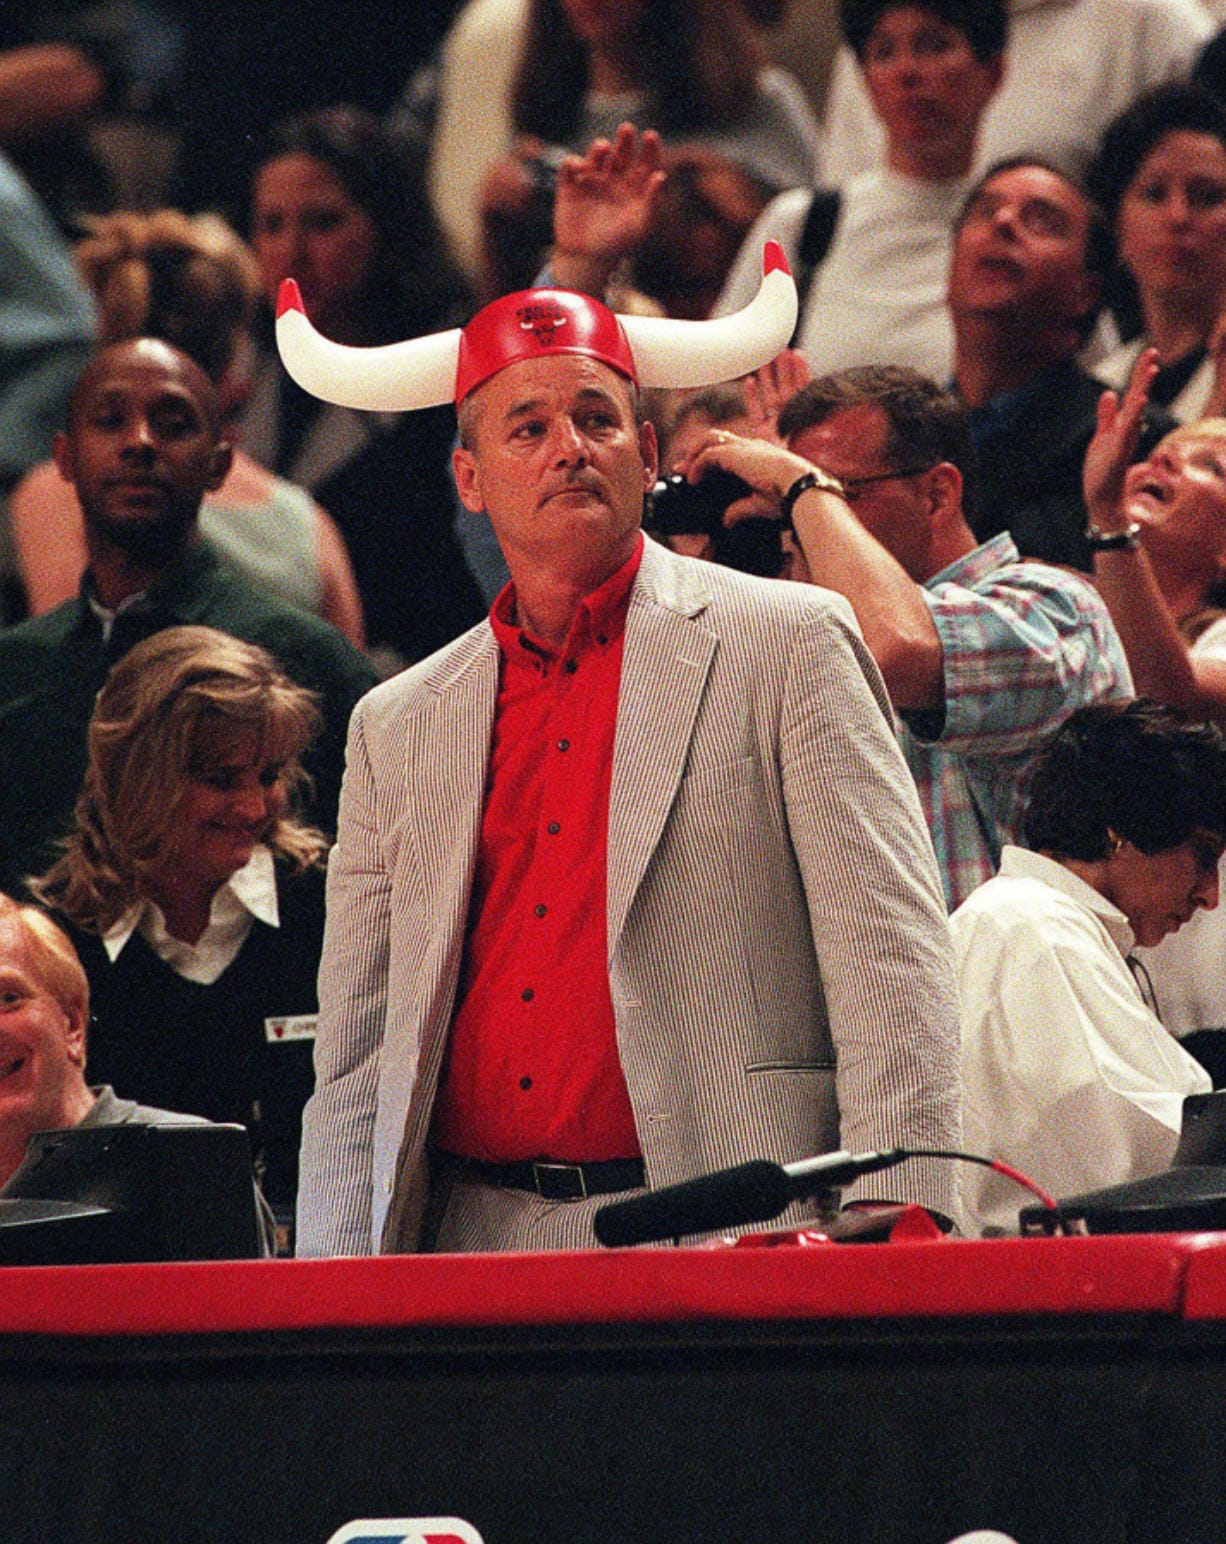 Bill Murray cheers for the Chicago Bulls as they play against the Indiana Pacers on May 31, 1998, at the United Center in Chicago.